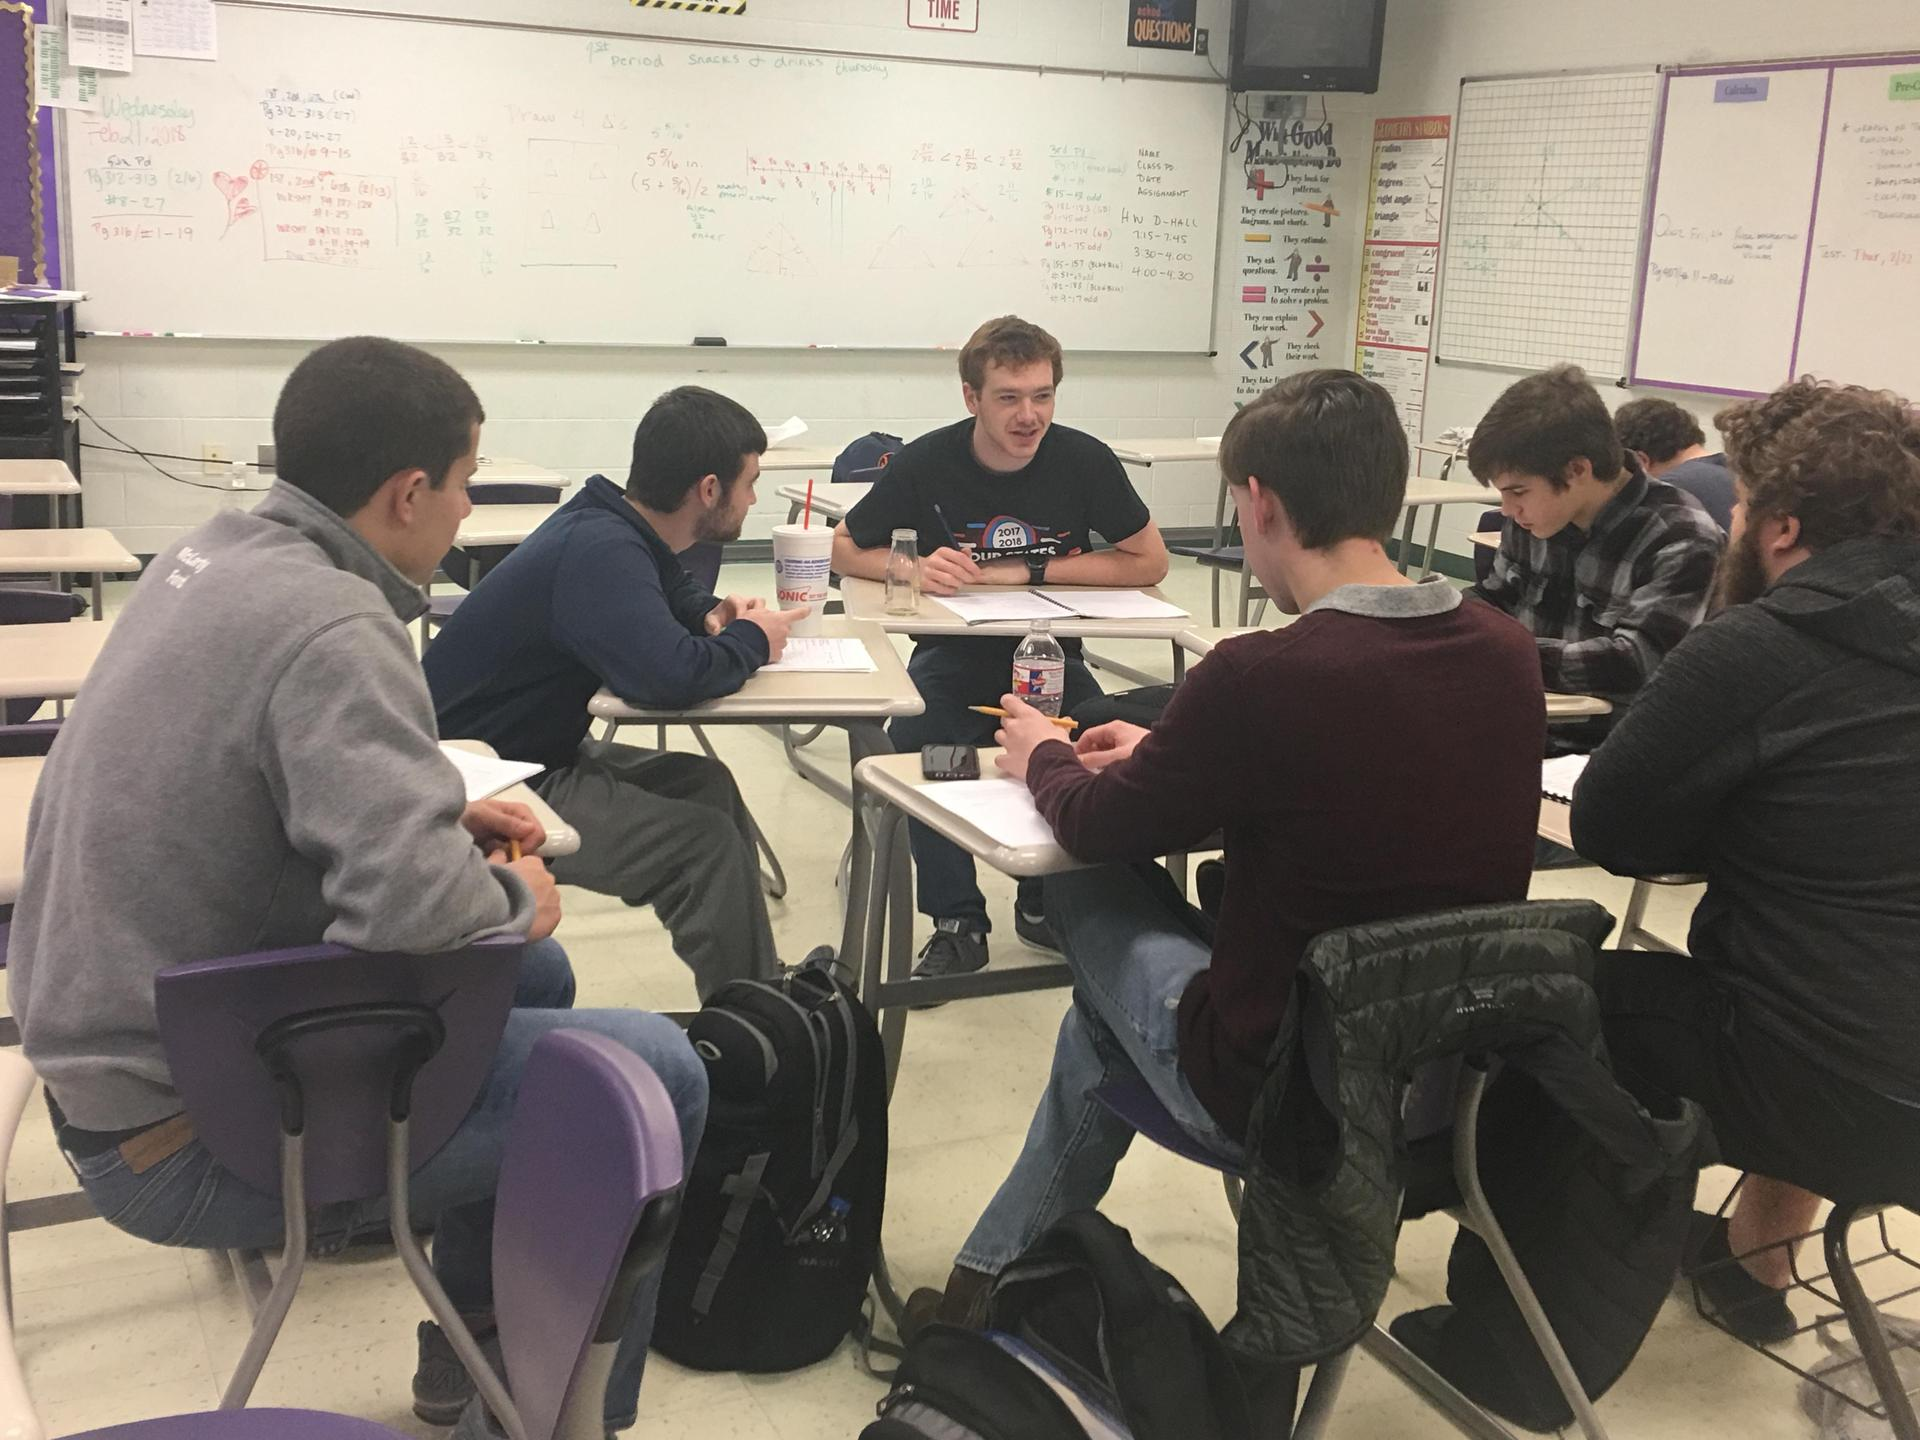 seven students sitting in their desks in a circle having a discussion